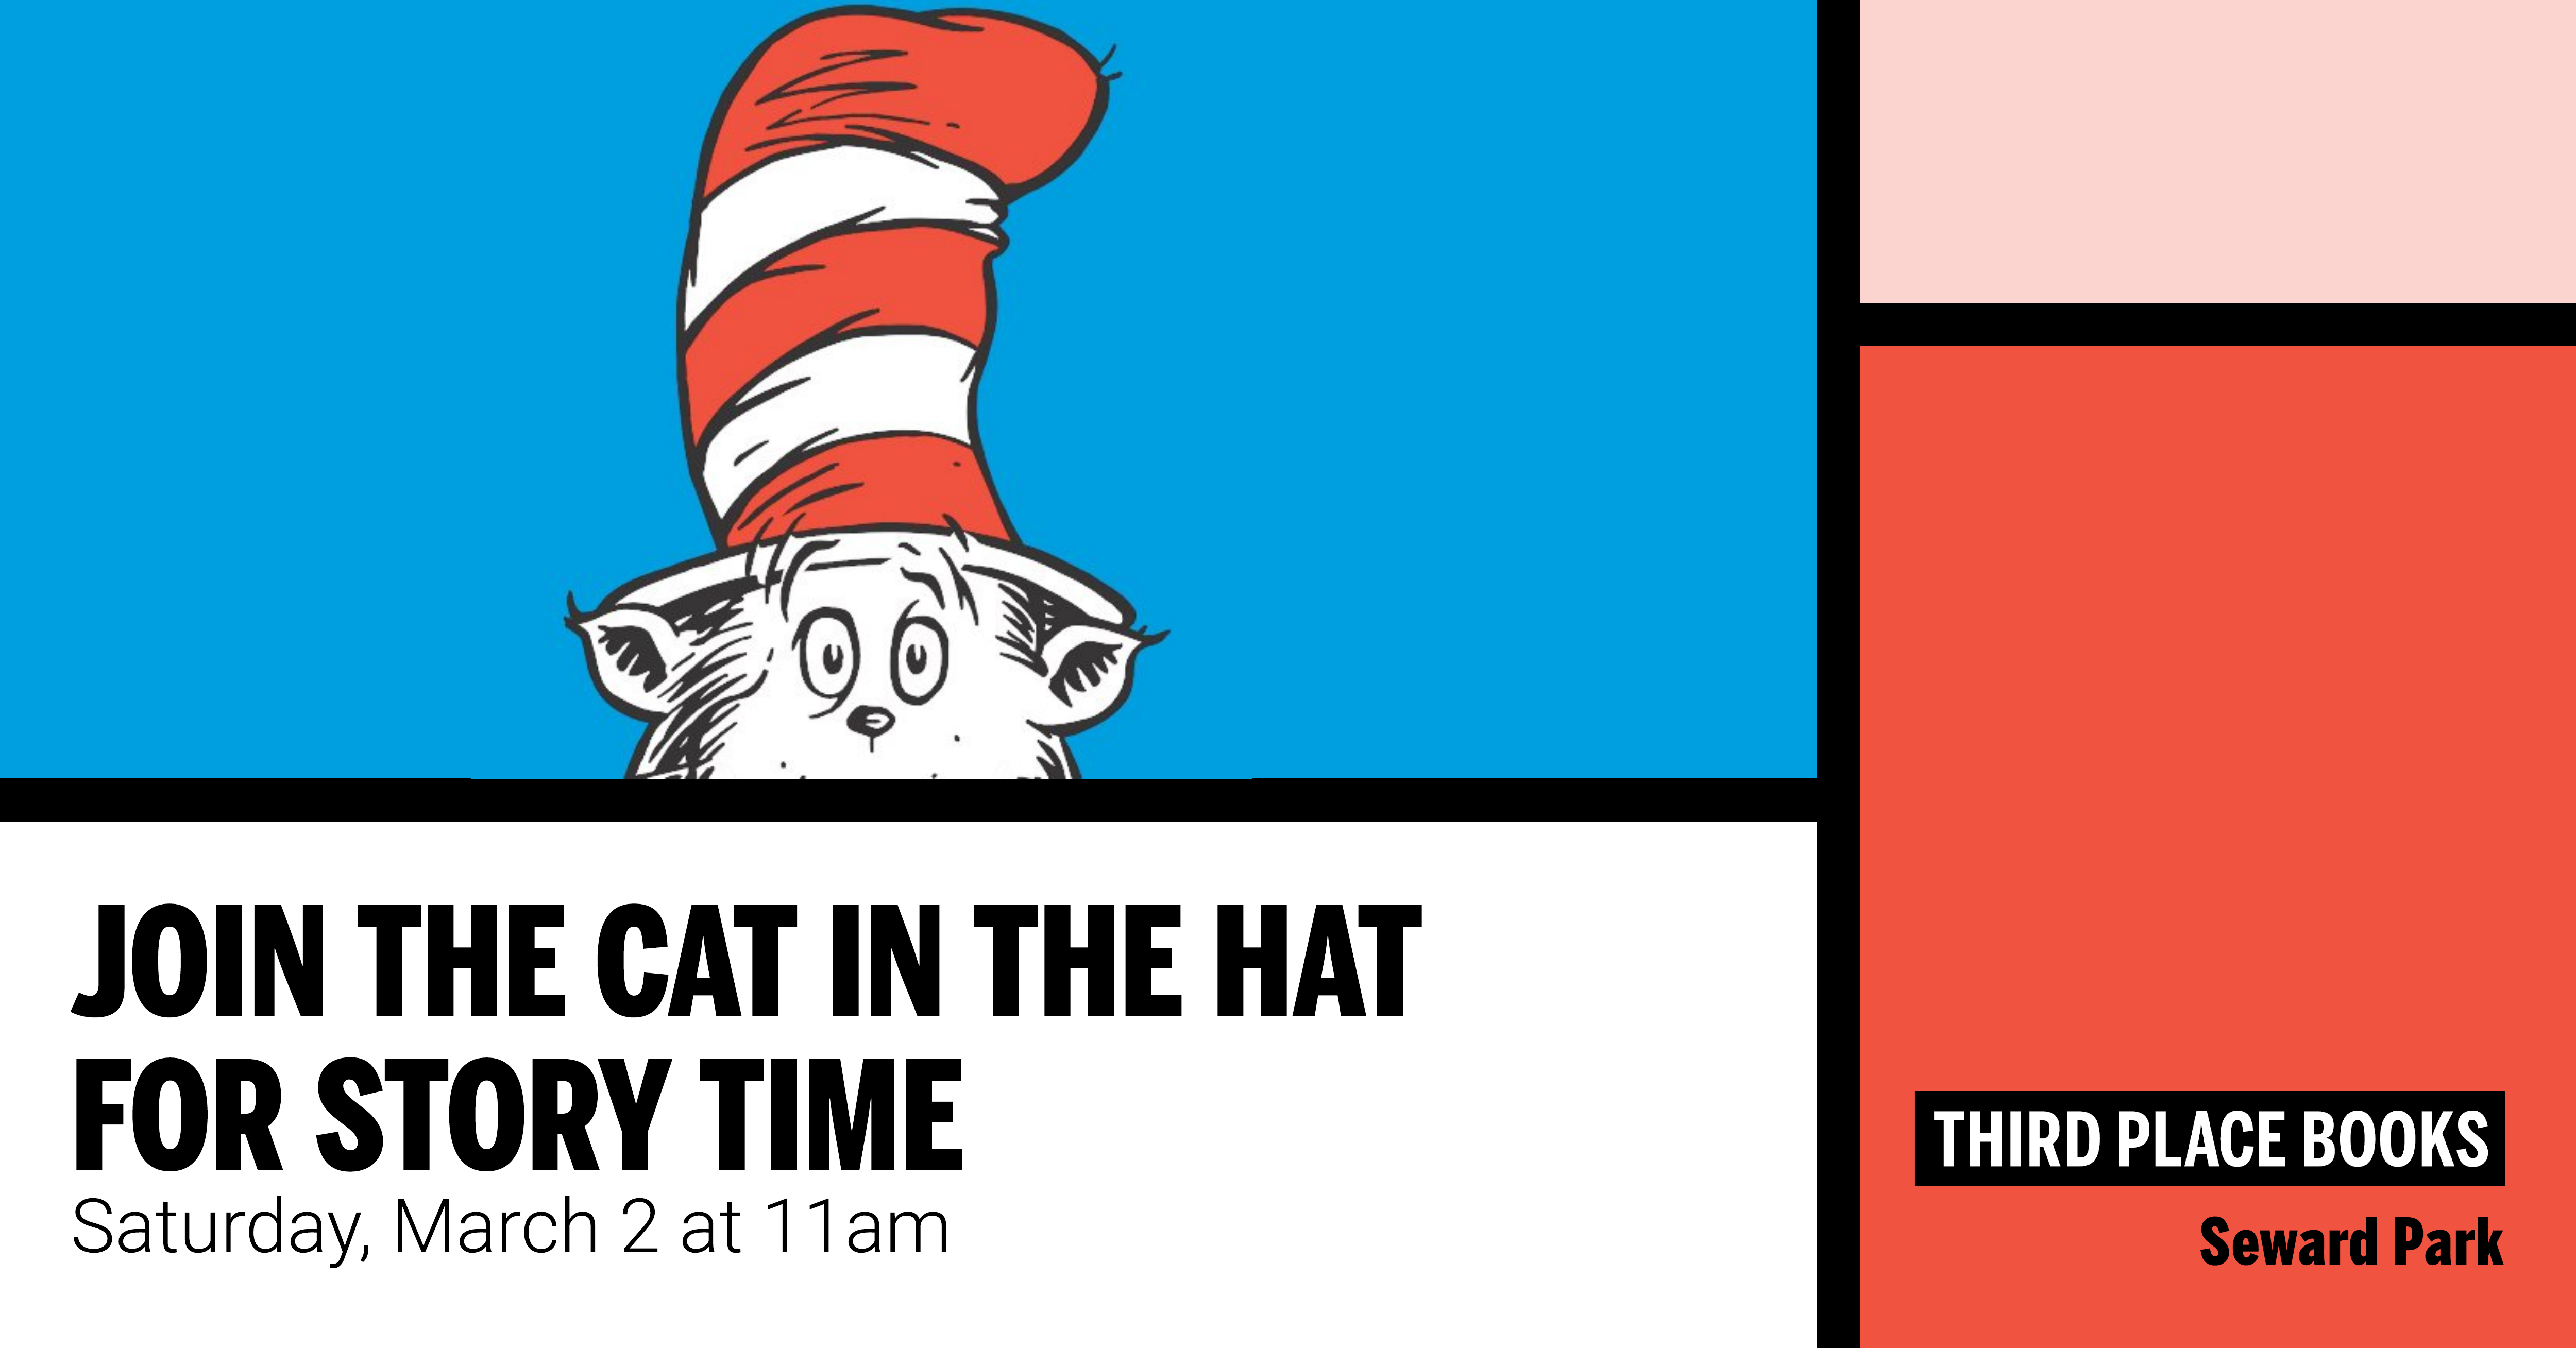 Join The Cat in the Hat for Story Time on Saturday, March 2 at 11am